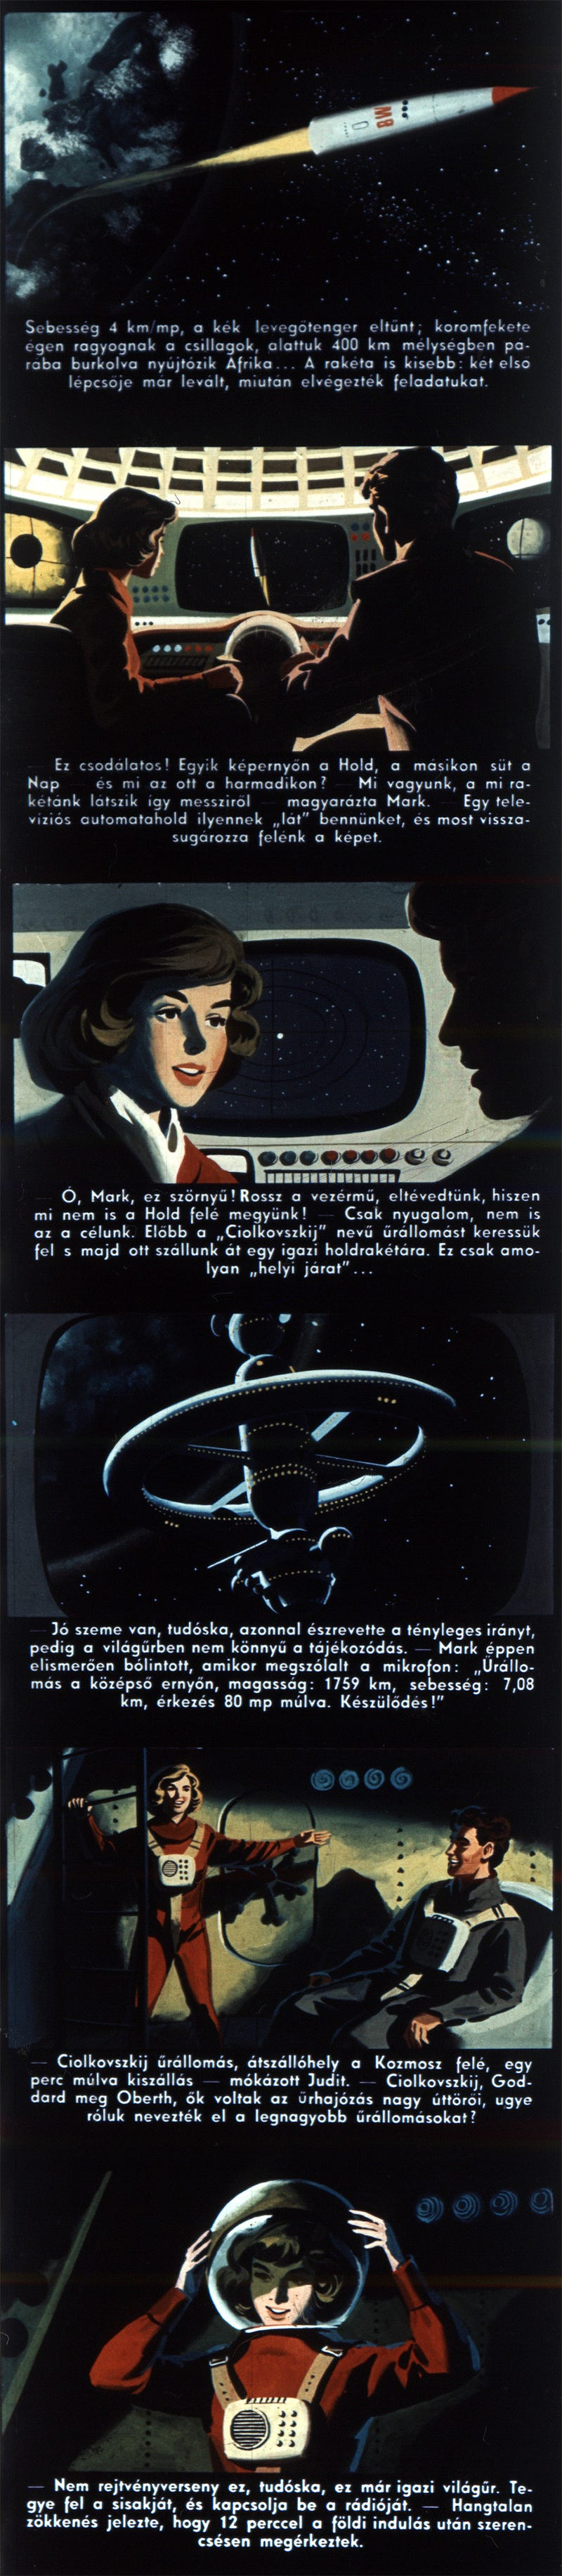 Watch This Commie Retro-Futuristic Space Tale